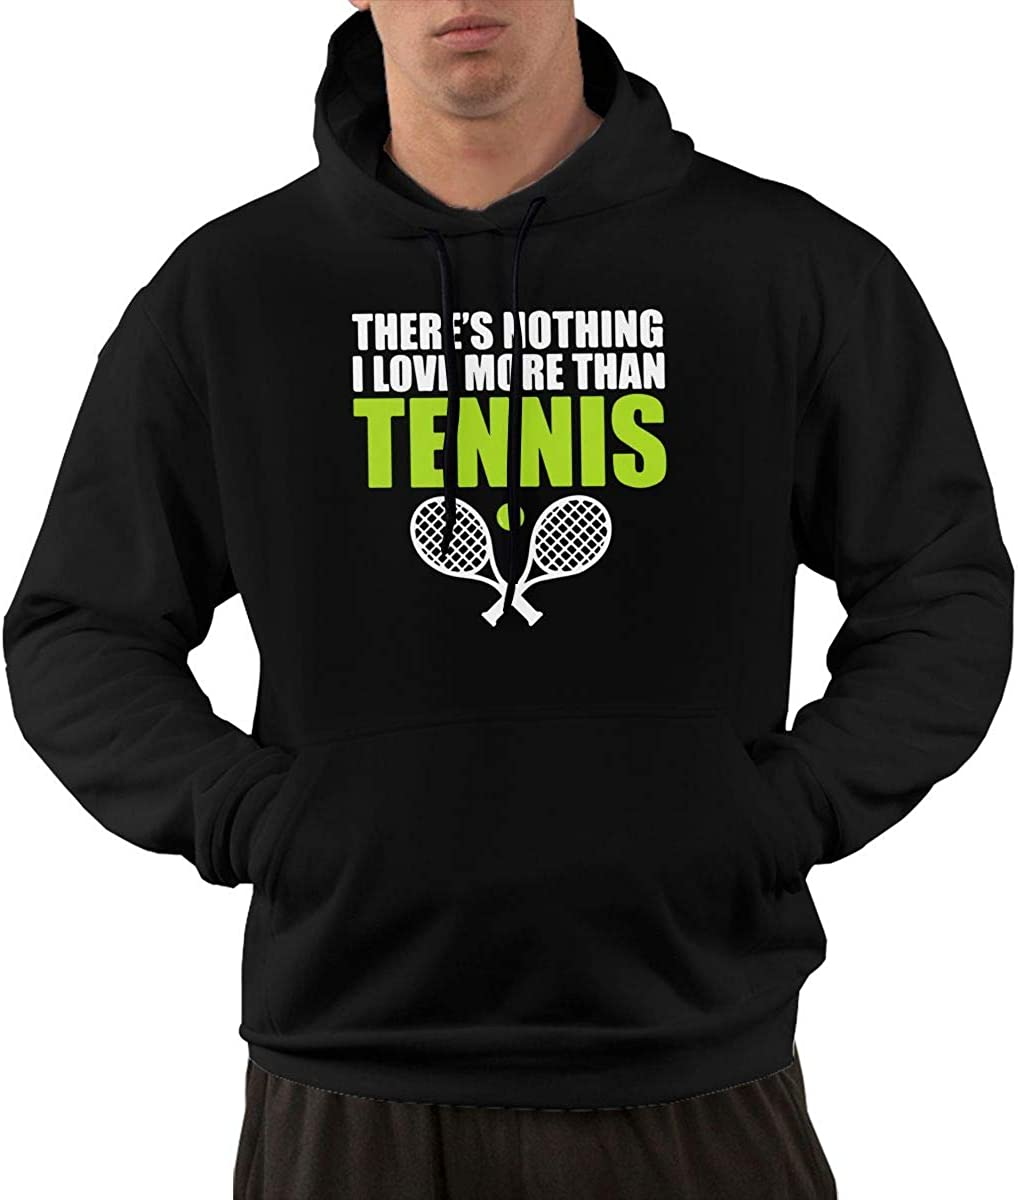 Mens Pullover Hoodie Sweatshirt with Nothing I L There's Pockets Oklahoma City Cheap mail order sales Mall